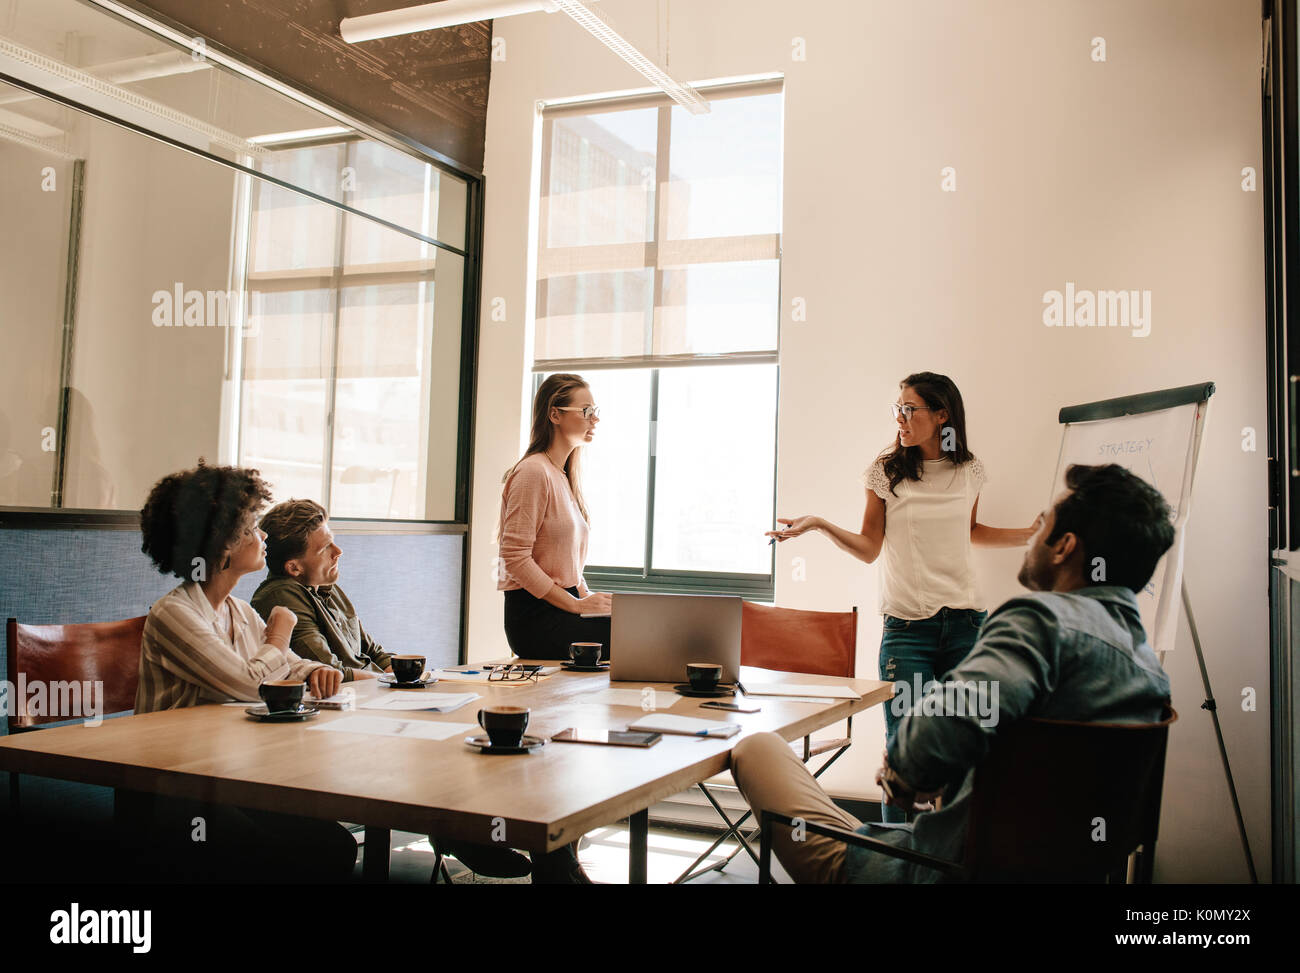 Creative business team having discussion during presentation in conference room. Businessman and woman meeting in boardroom for exploring new business - Stock Image